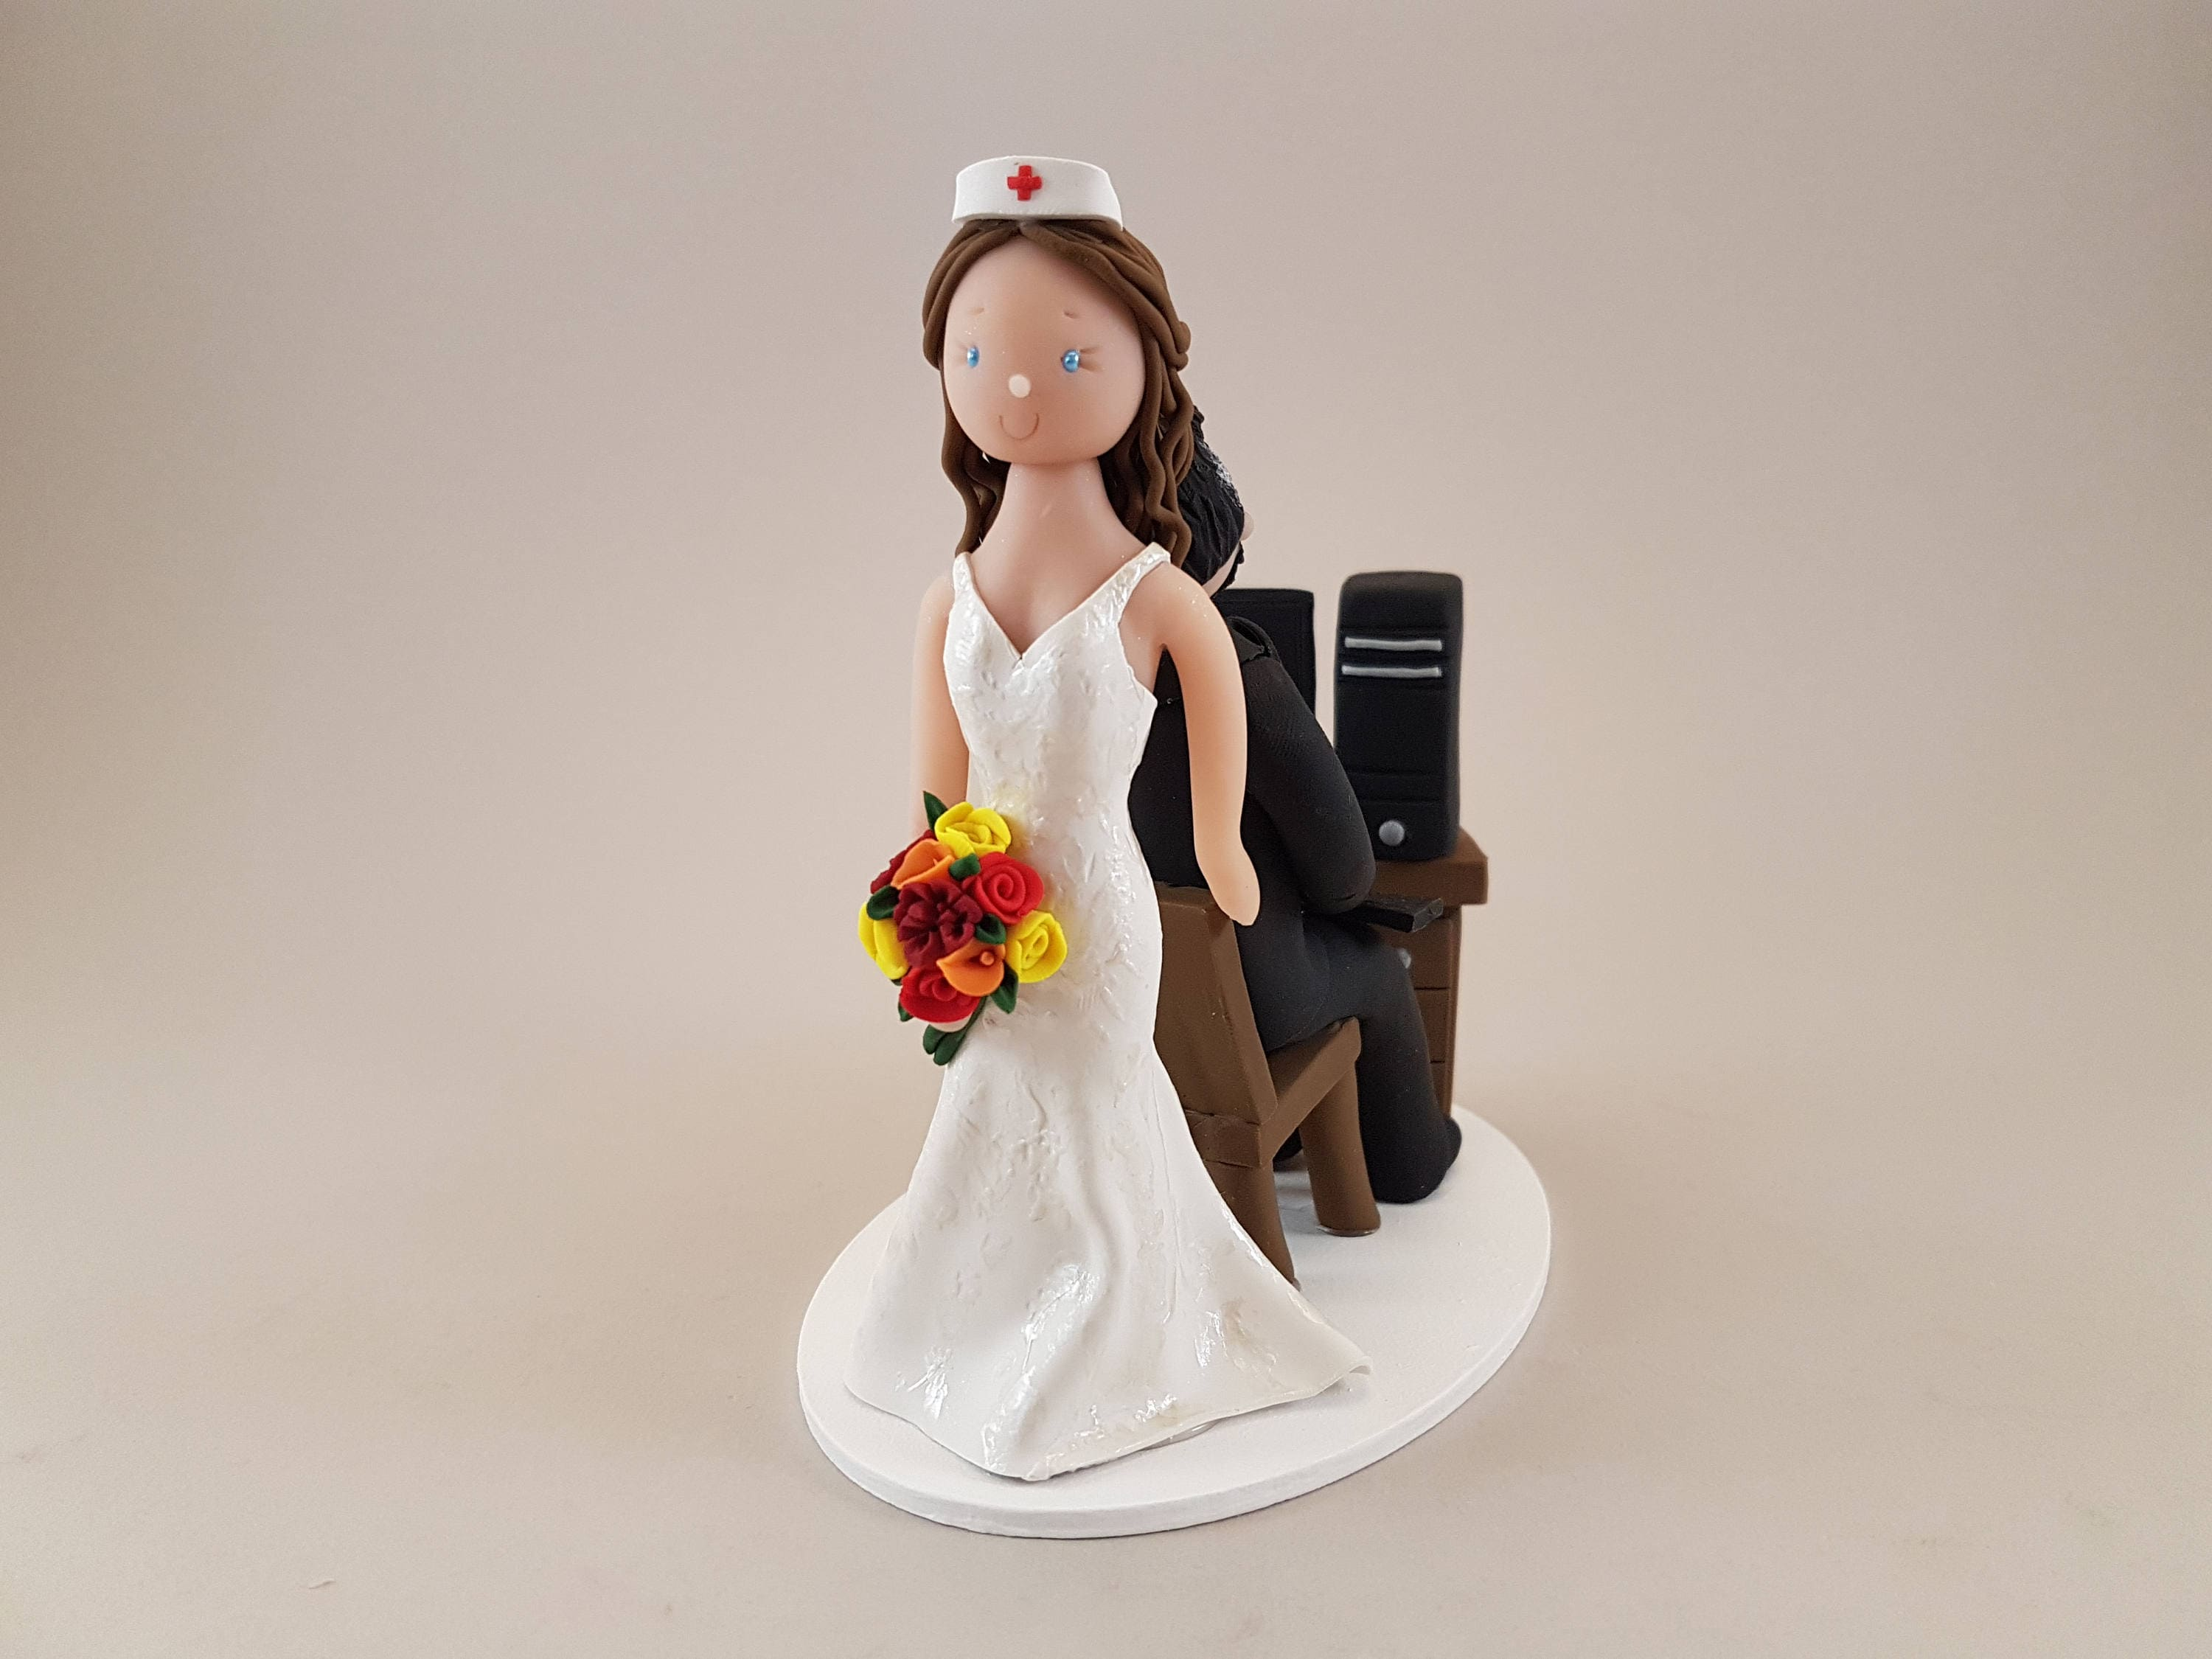 Nurse Dragging Computer Geek Customized Wedding Cake Topper